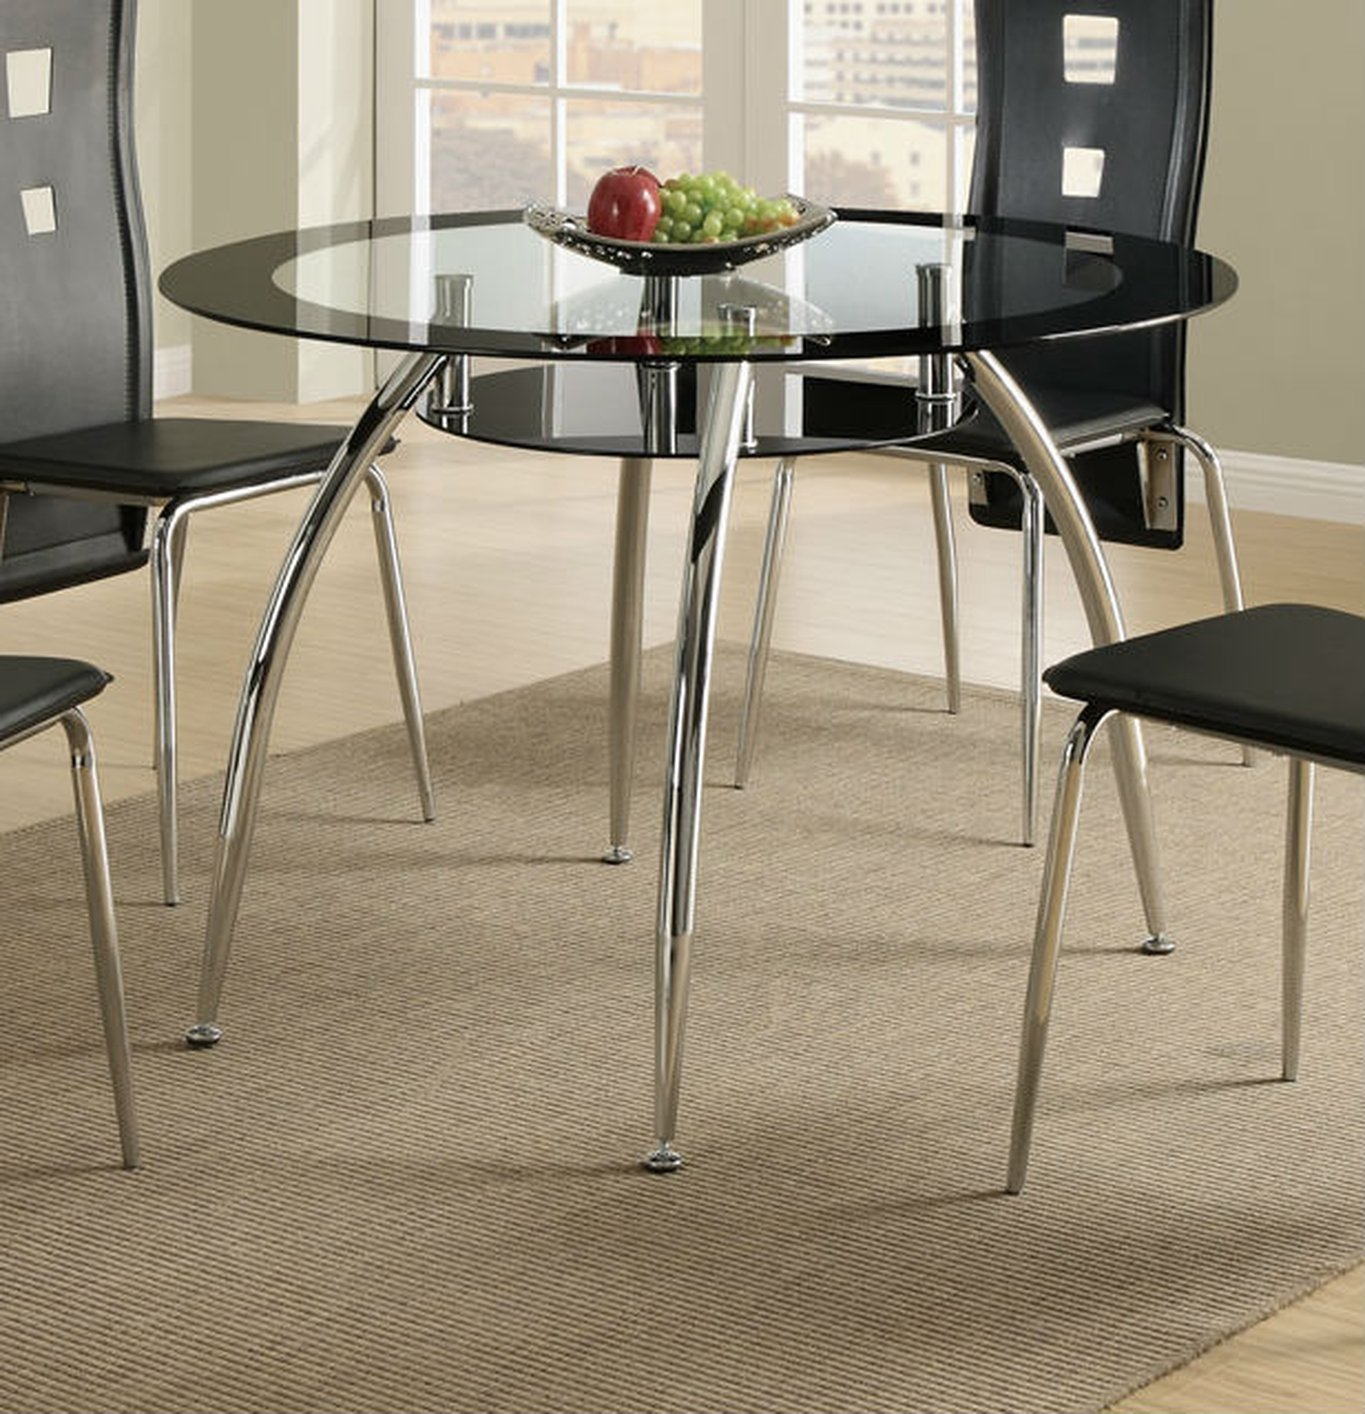 Poundex F2211 Black Glass Dining Table Steal A Sofa